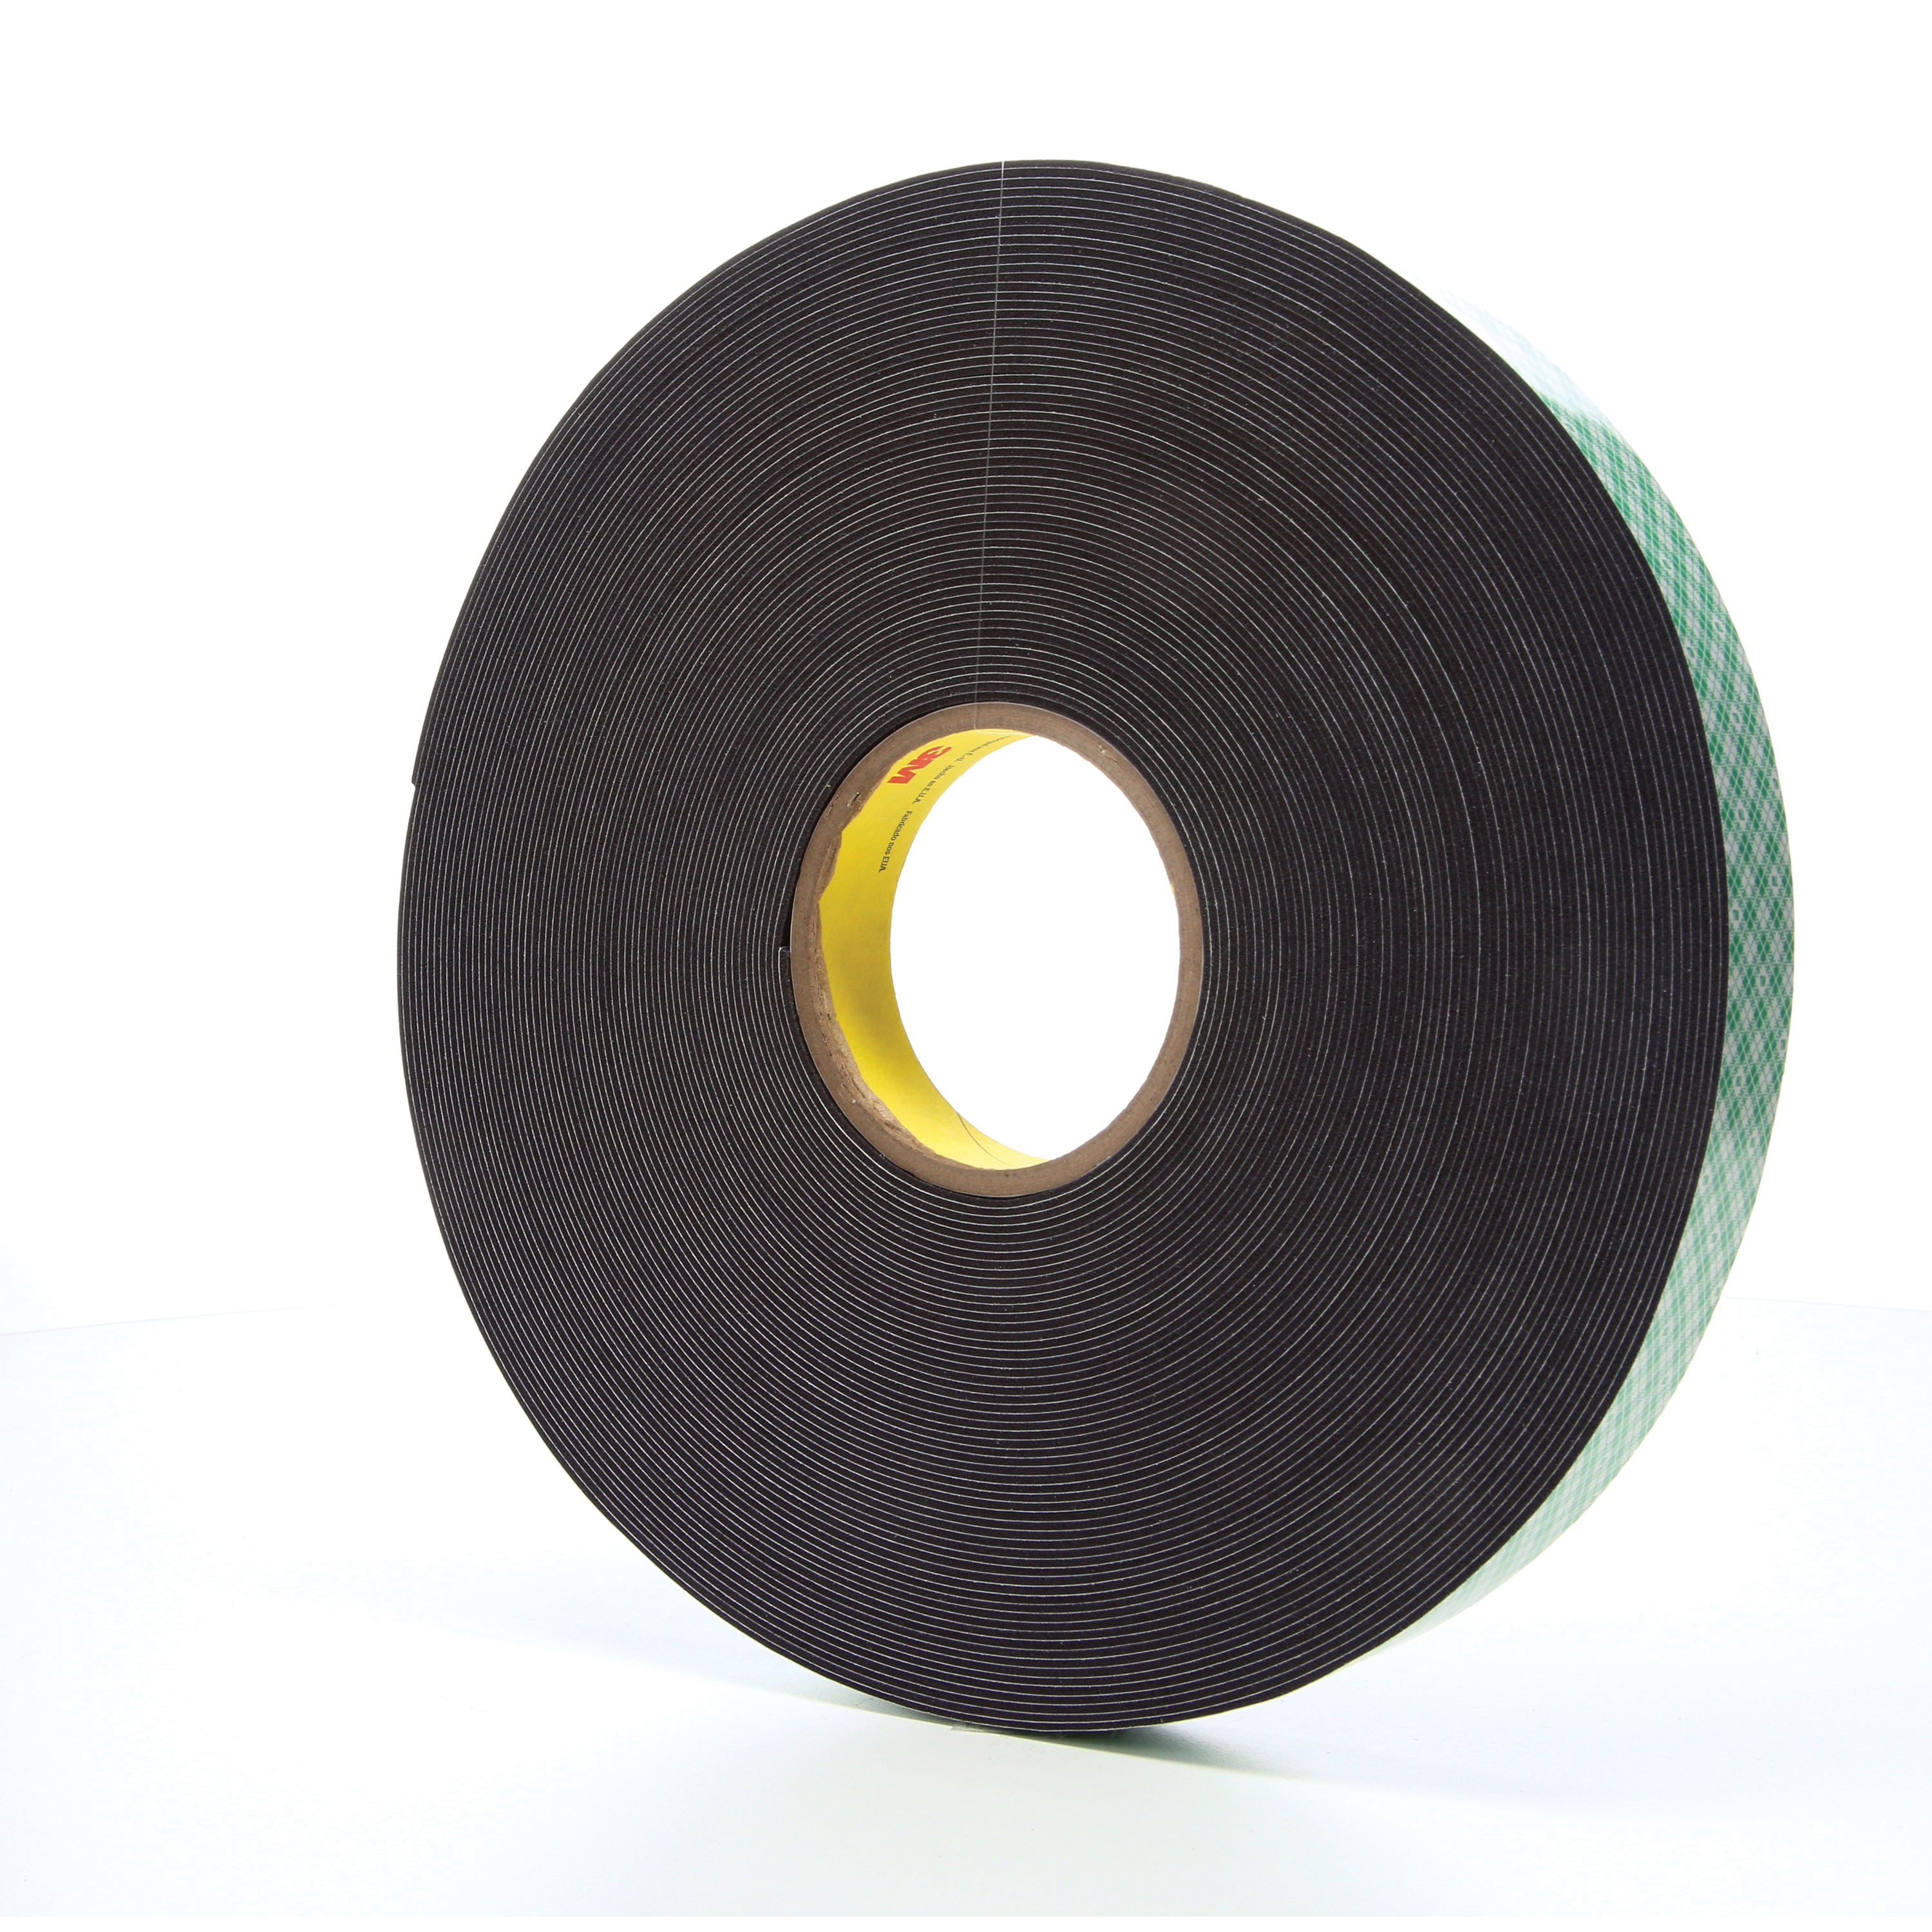 3M™ 021200-14558 Double Coated Tape, 36 yd L x 1 in W, 62 mil THK, Acrylic Adhesive, Urethane Foam Backing, Black